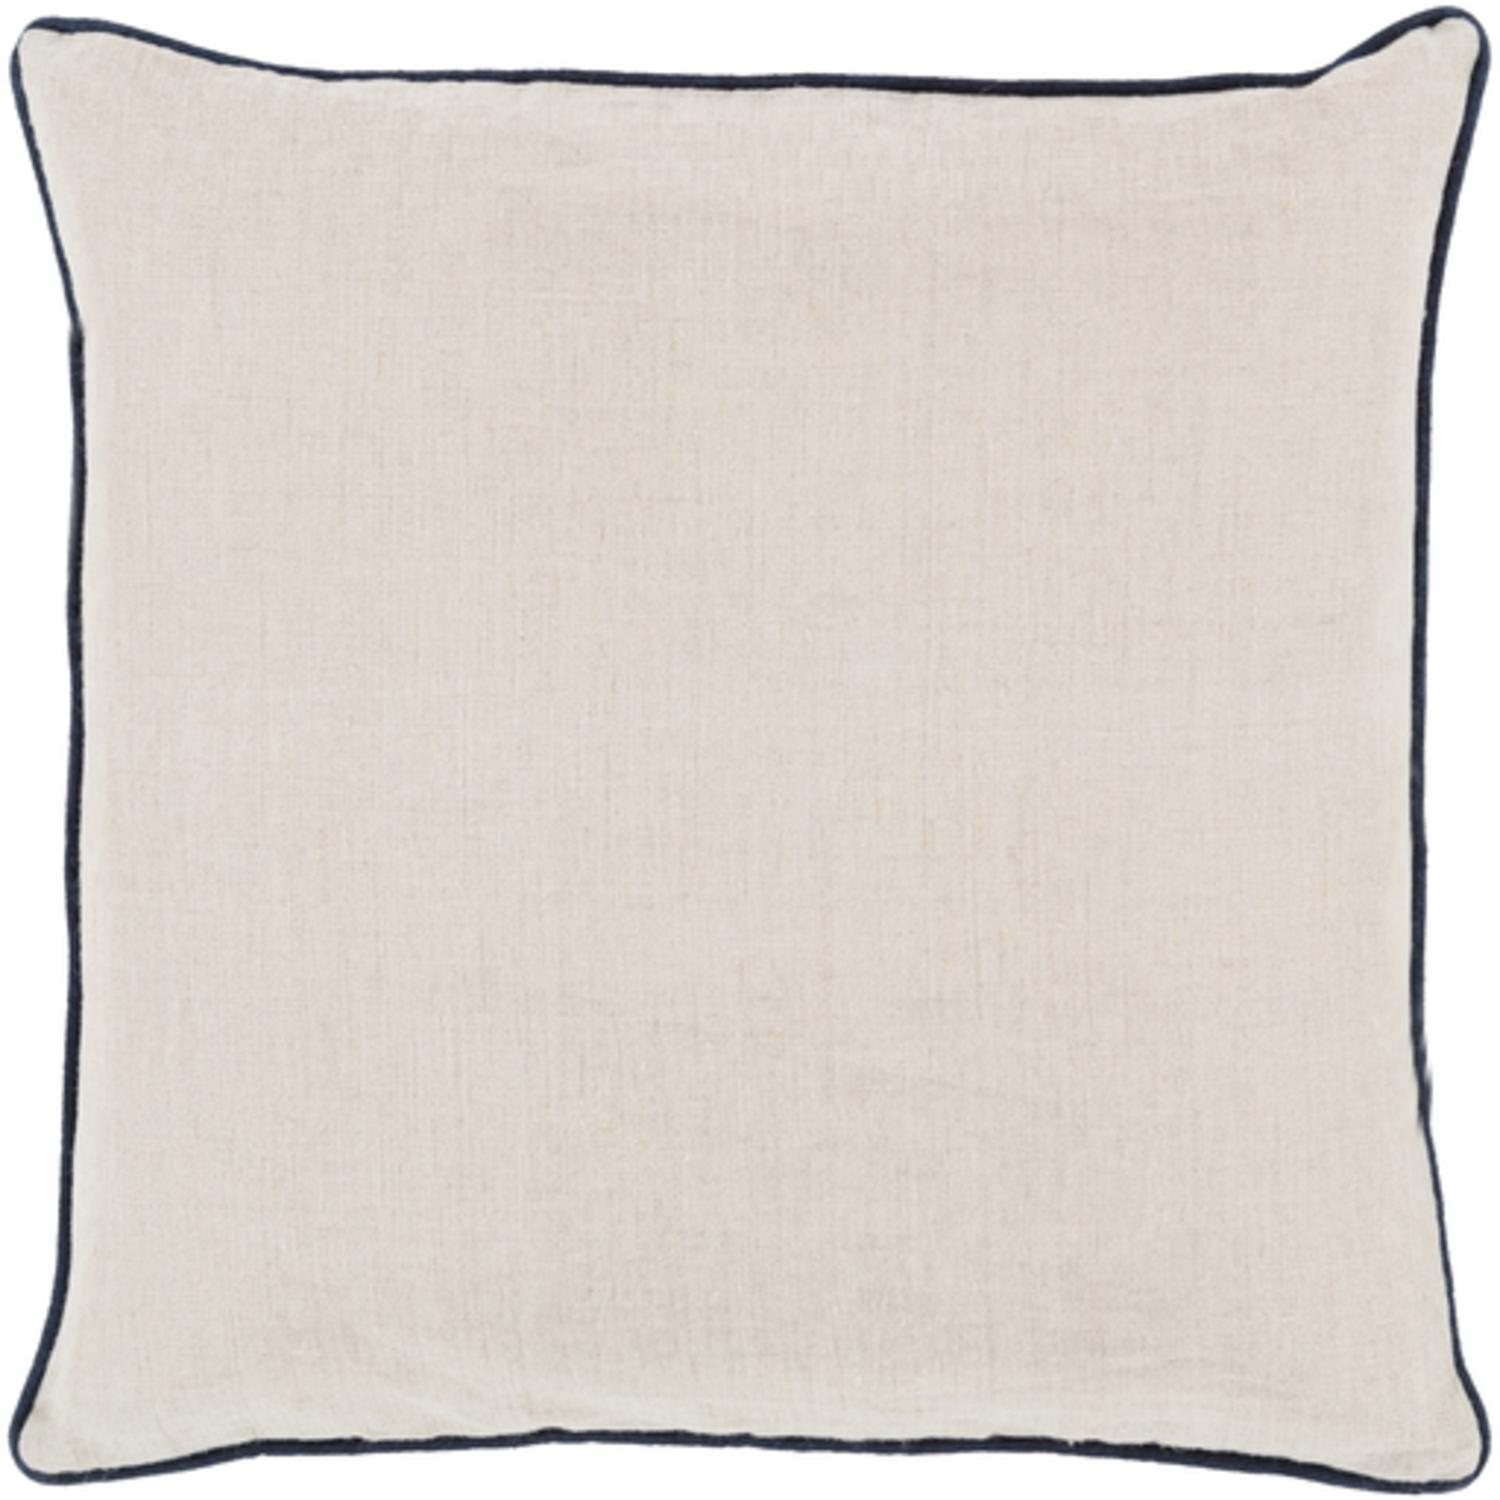 Best Throw Pillow Filling : 18